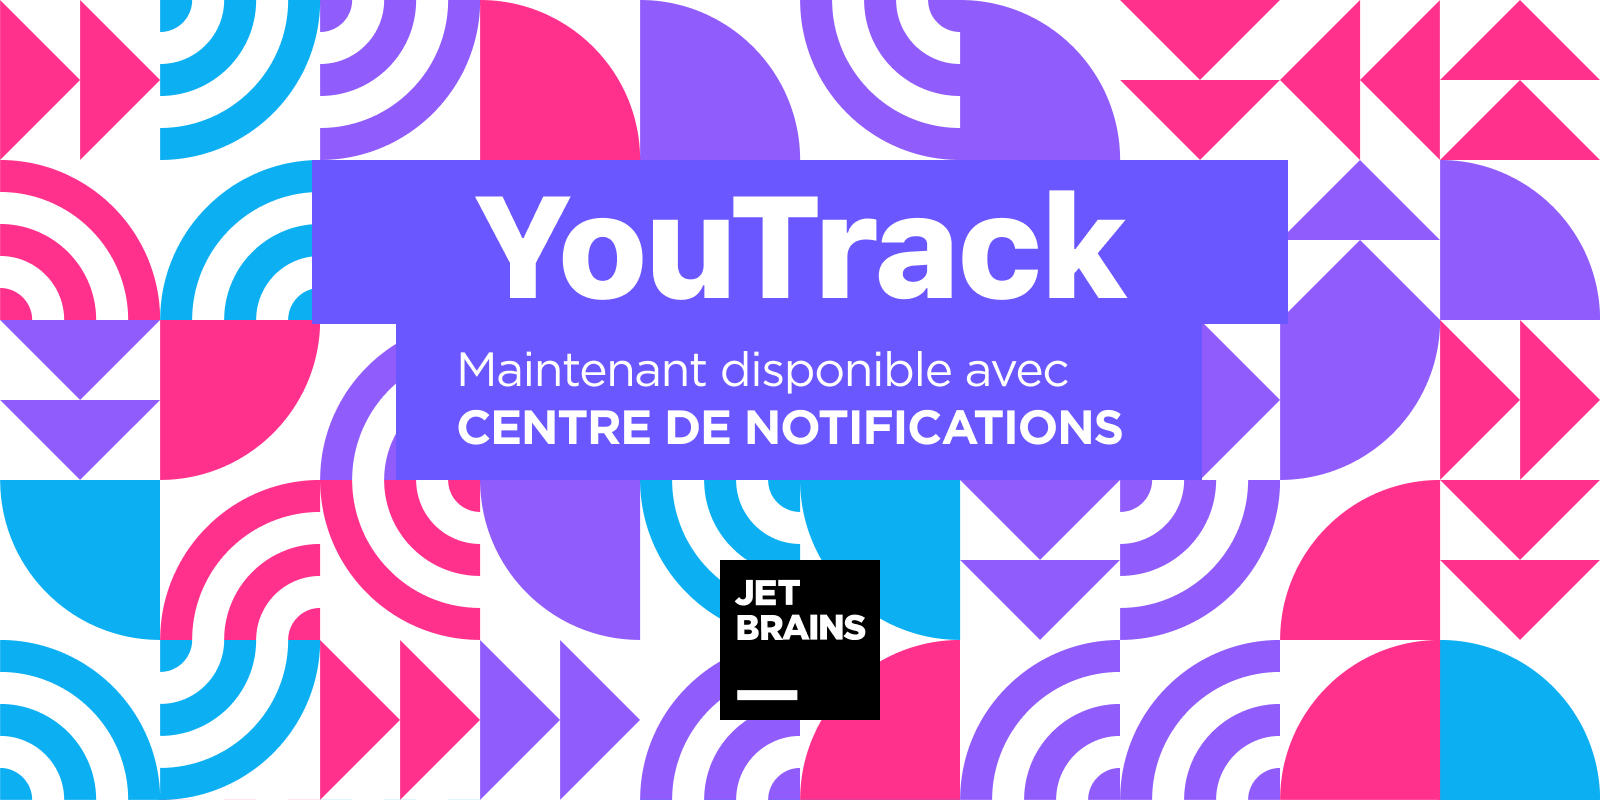 YouTrack avec centre de notifications